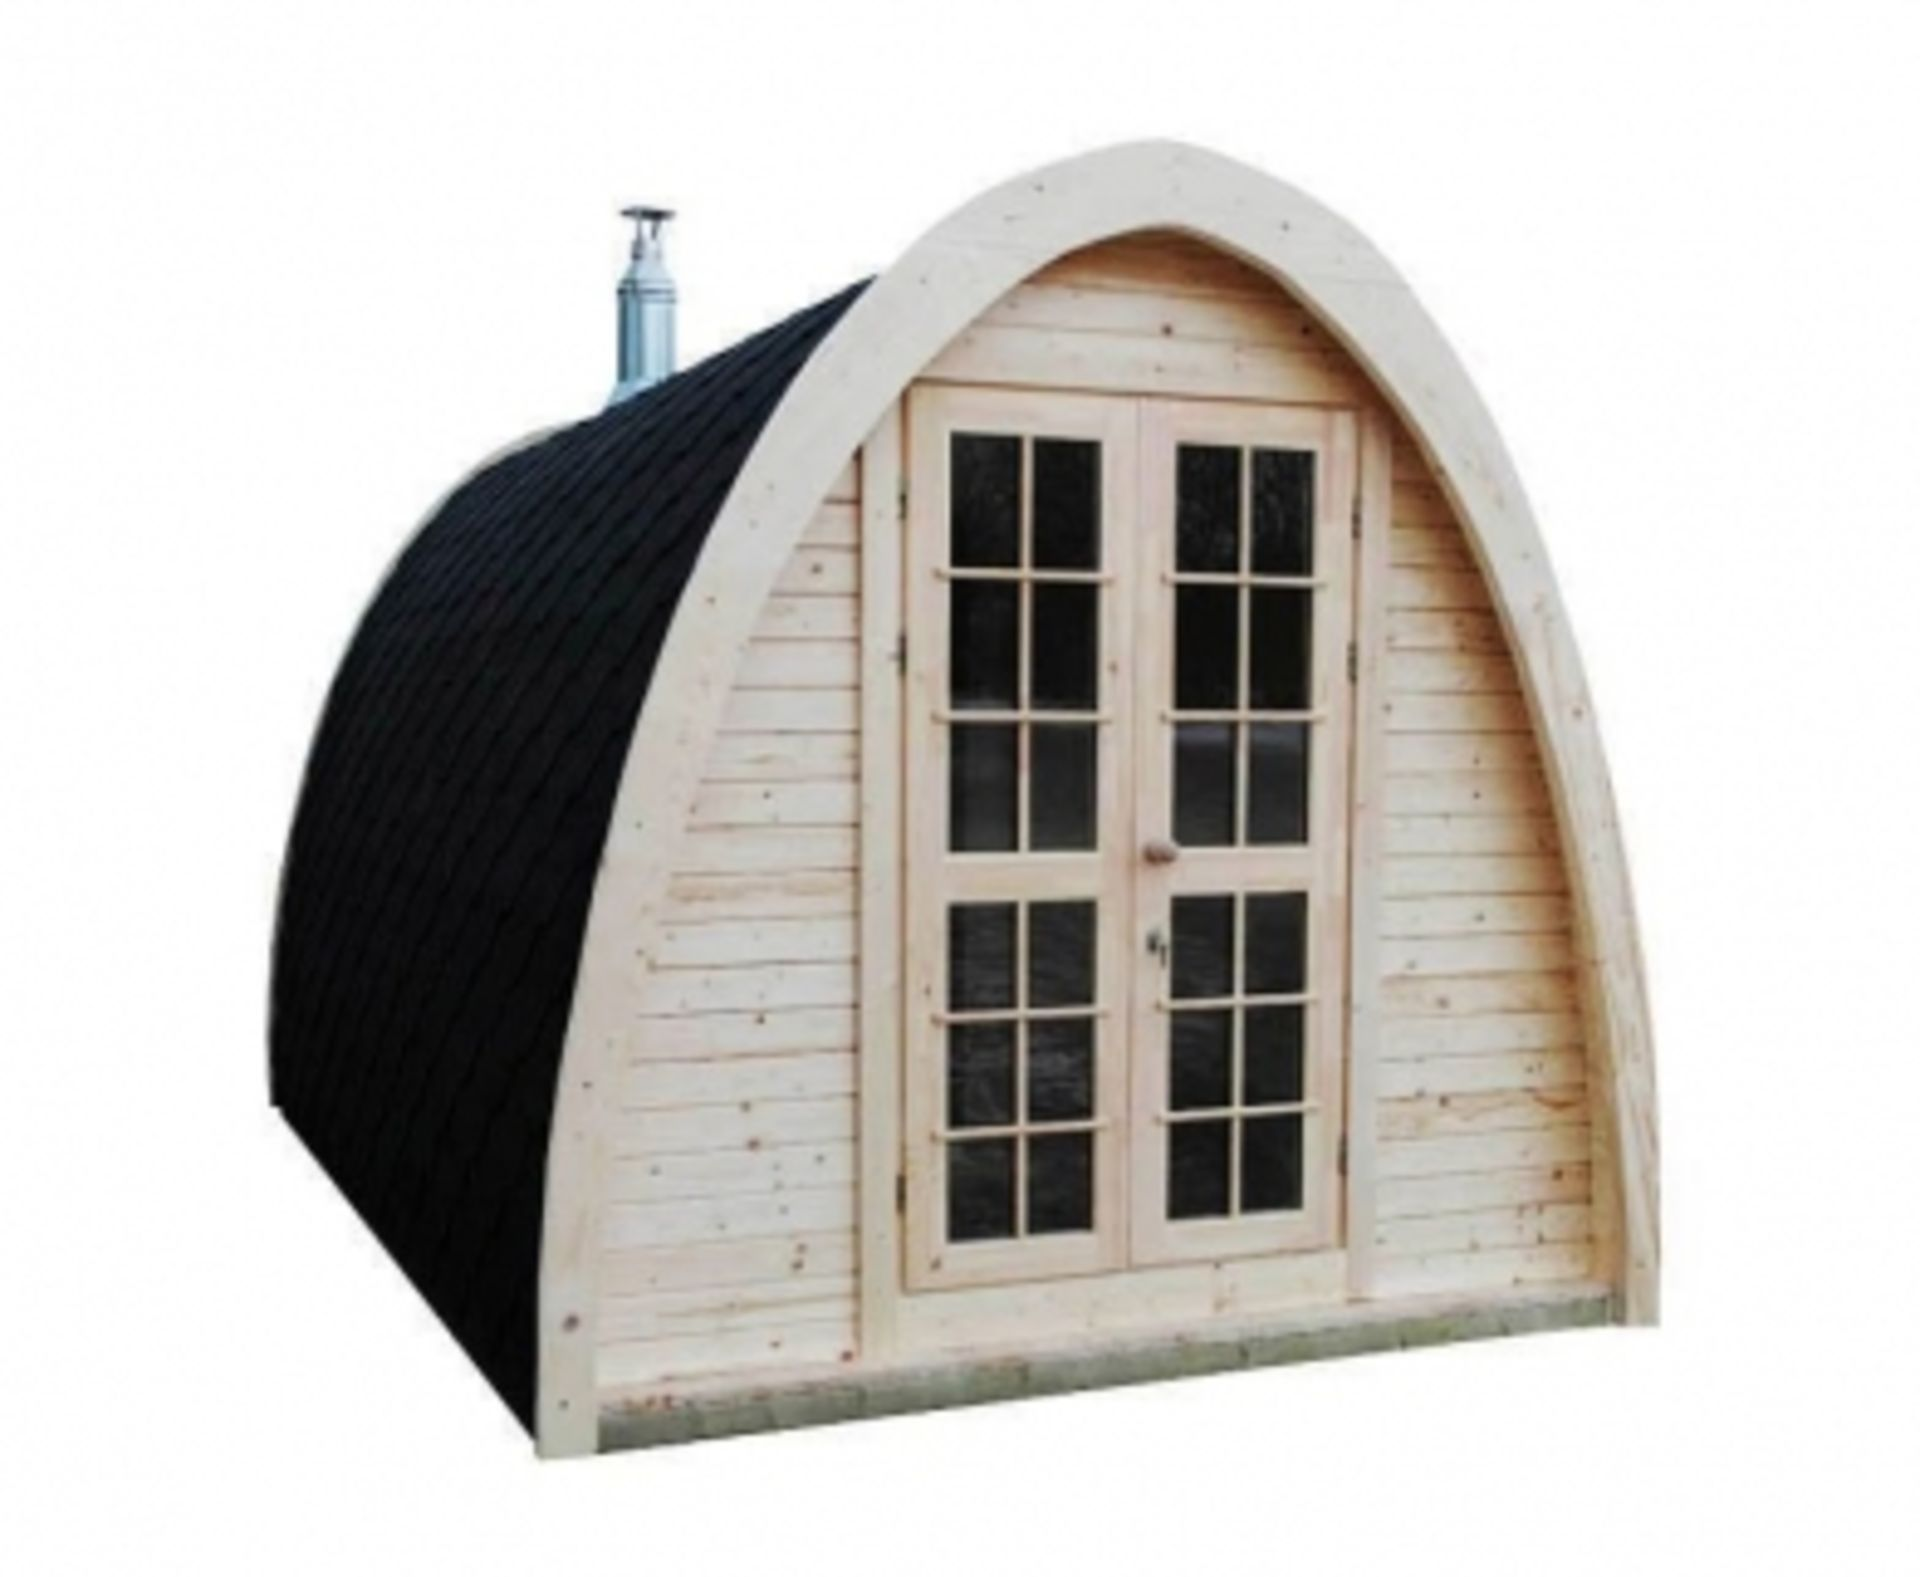 Lot 19016 - + VAT Brand New 2.4 x 2.3m Sauna Pod - Roof Cover With Bitumen Shingles - Two Tempered Glass